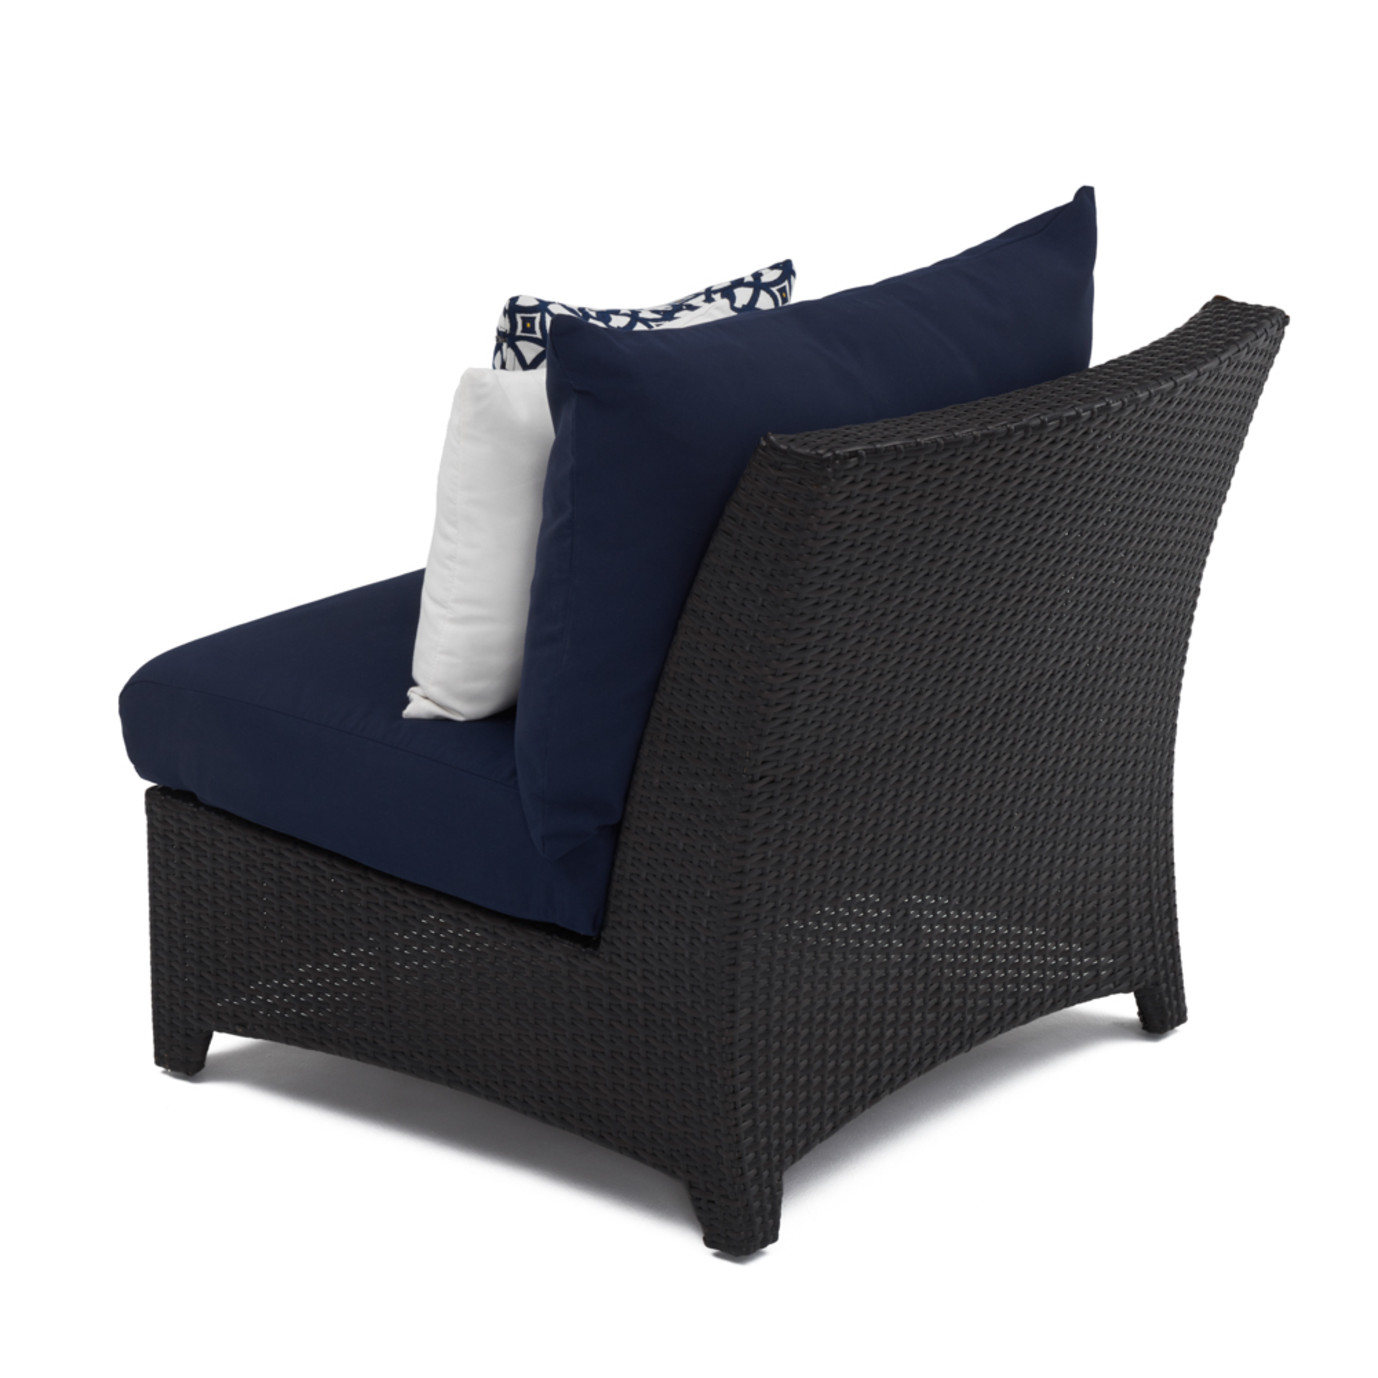 Deco™ 6pc Sectional and Table - Navy Blue